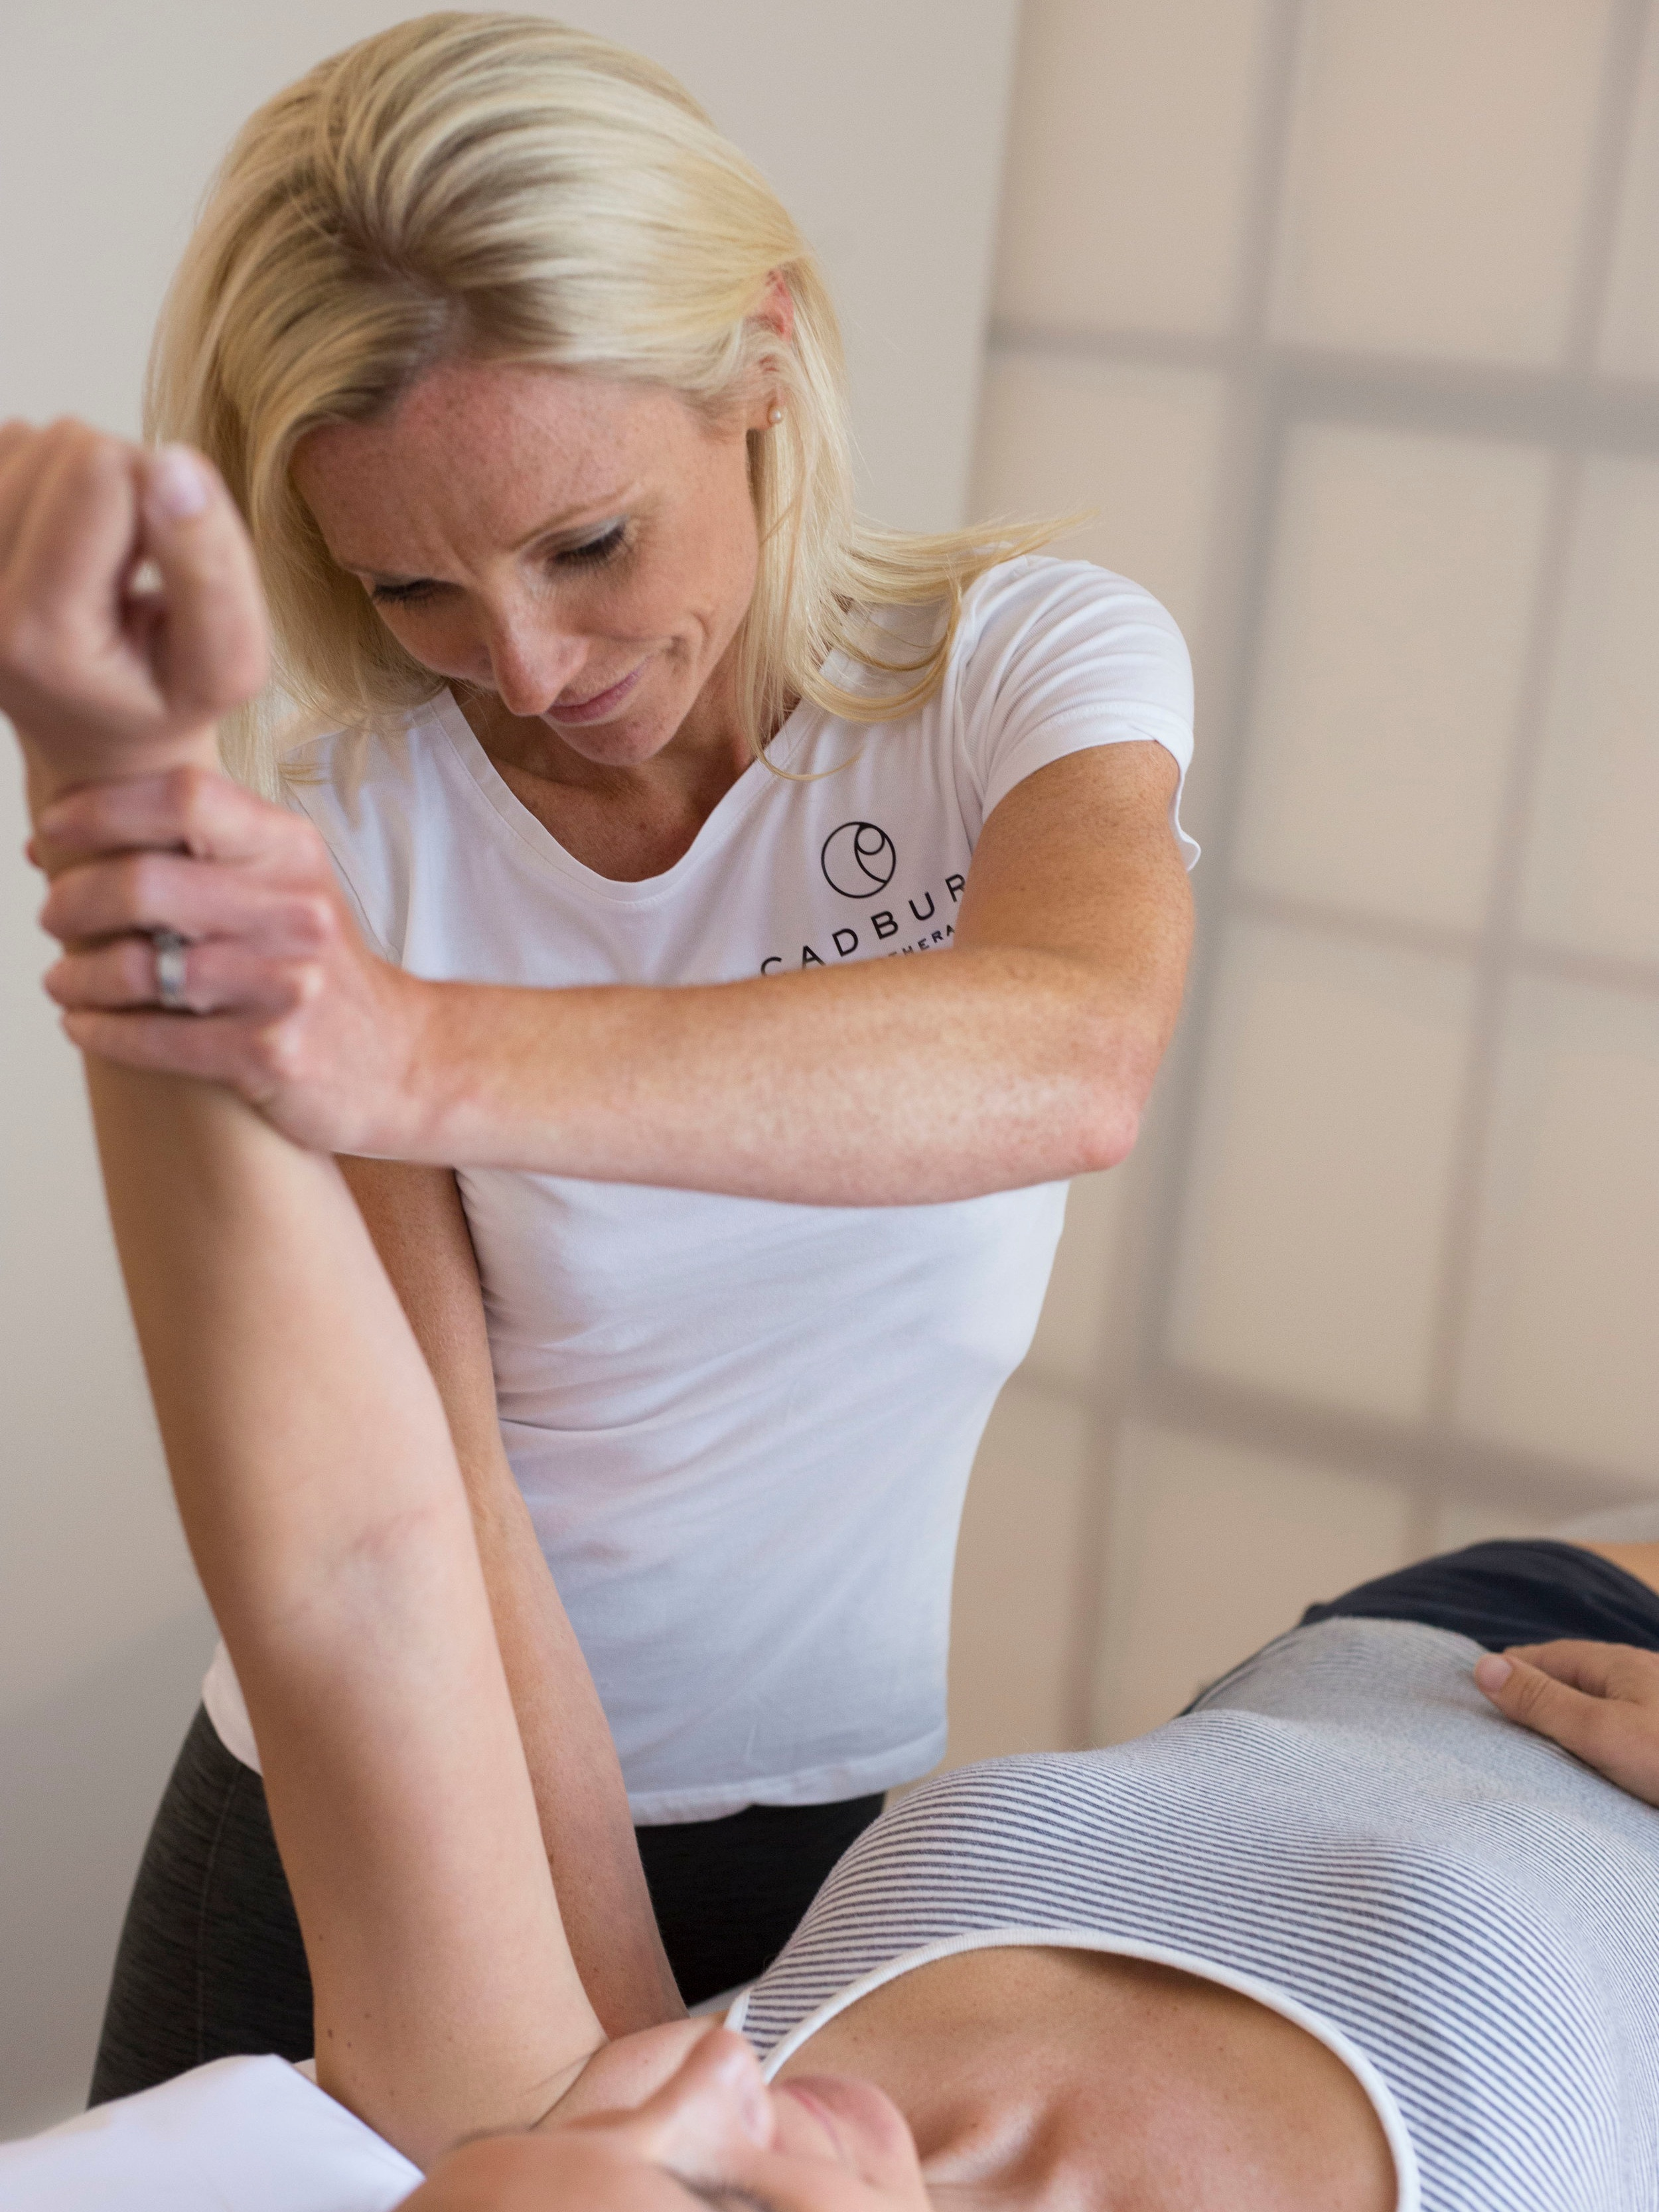 Experienced Practitioners - At Cadbury Physiotherapy we believe in living life to the fullest. Our varied team of experienced practitioners can provide a range of treatments which will allow you to achieve this.